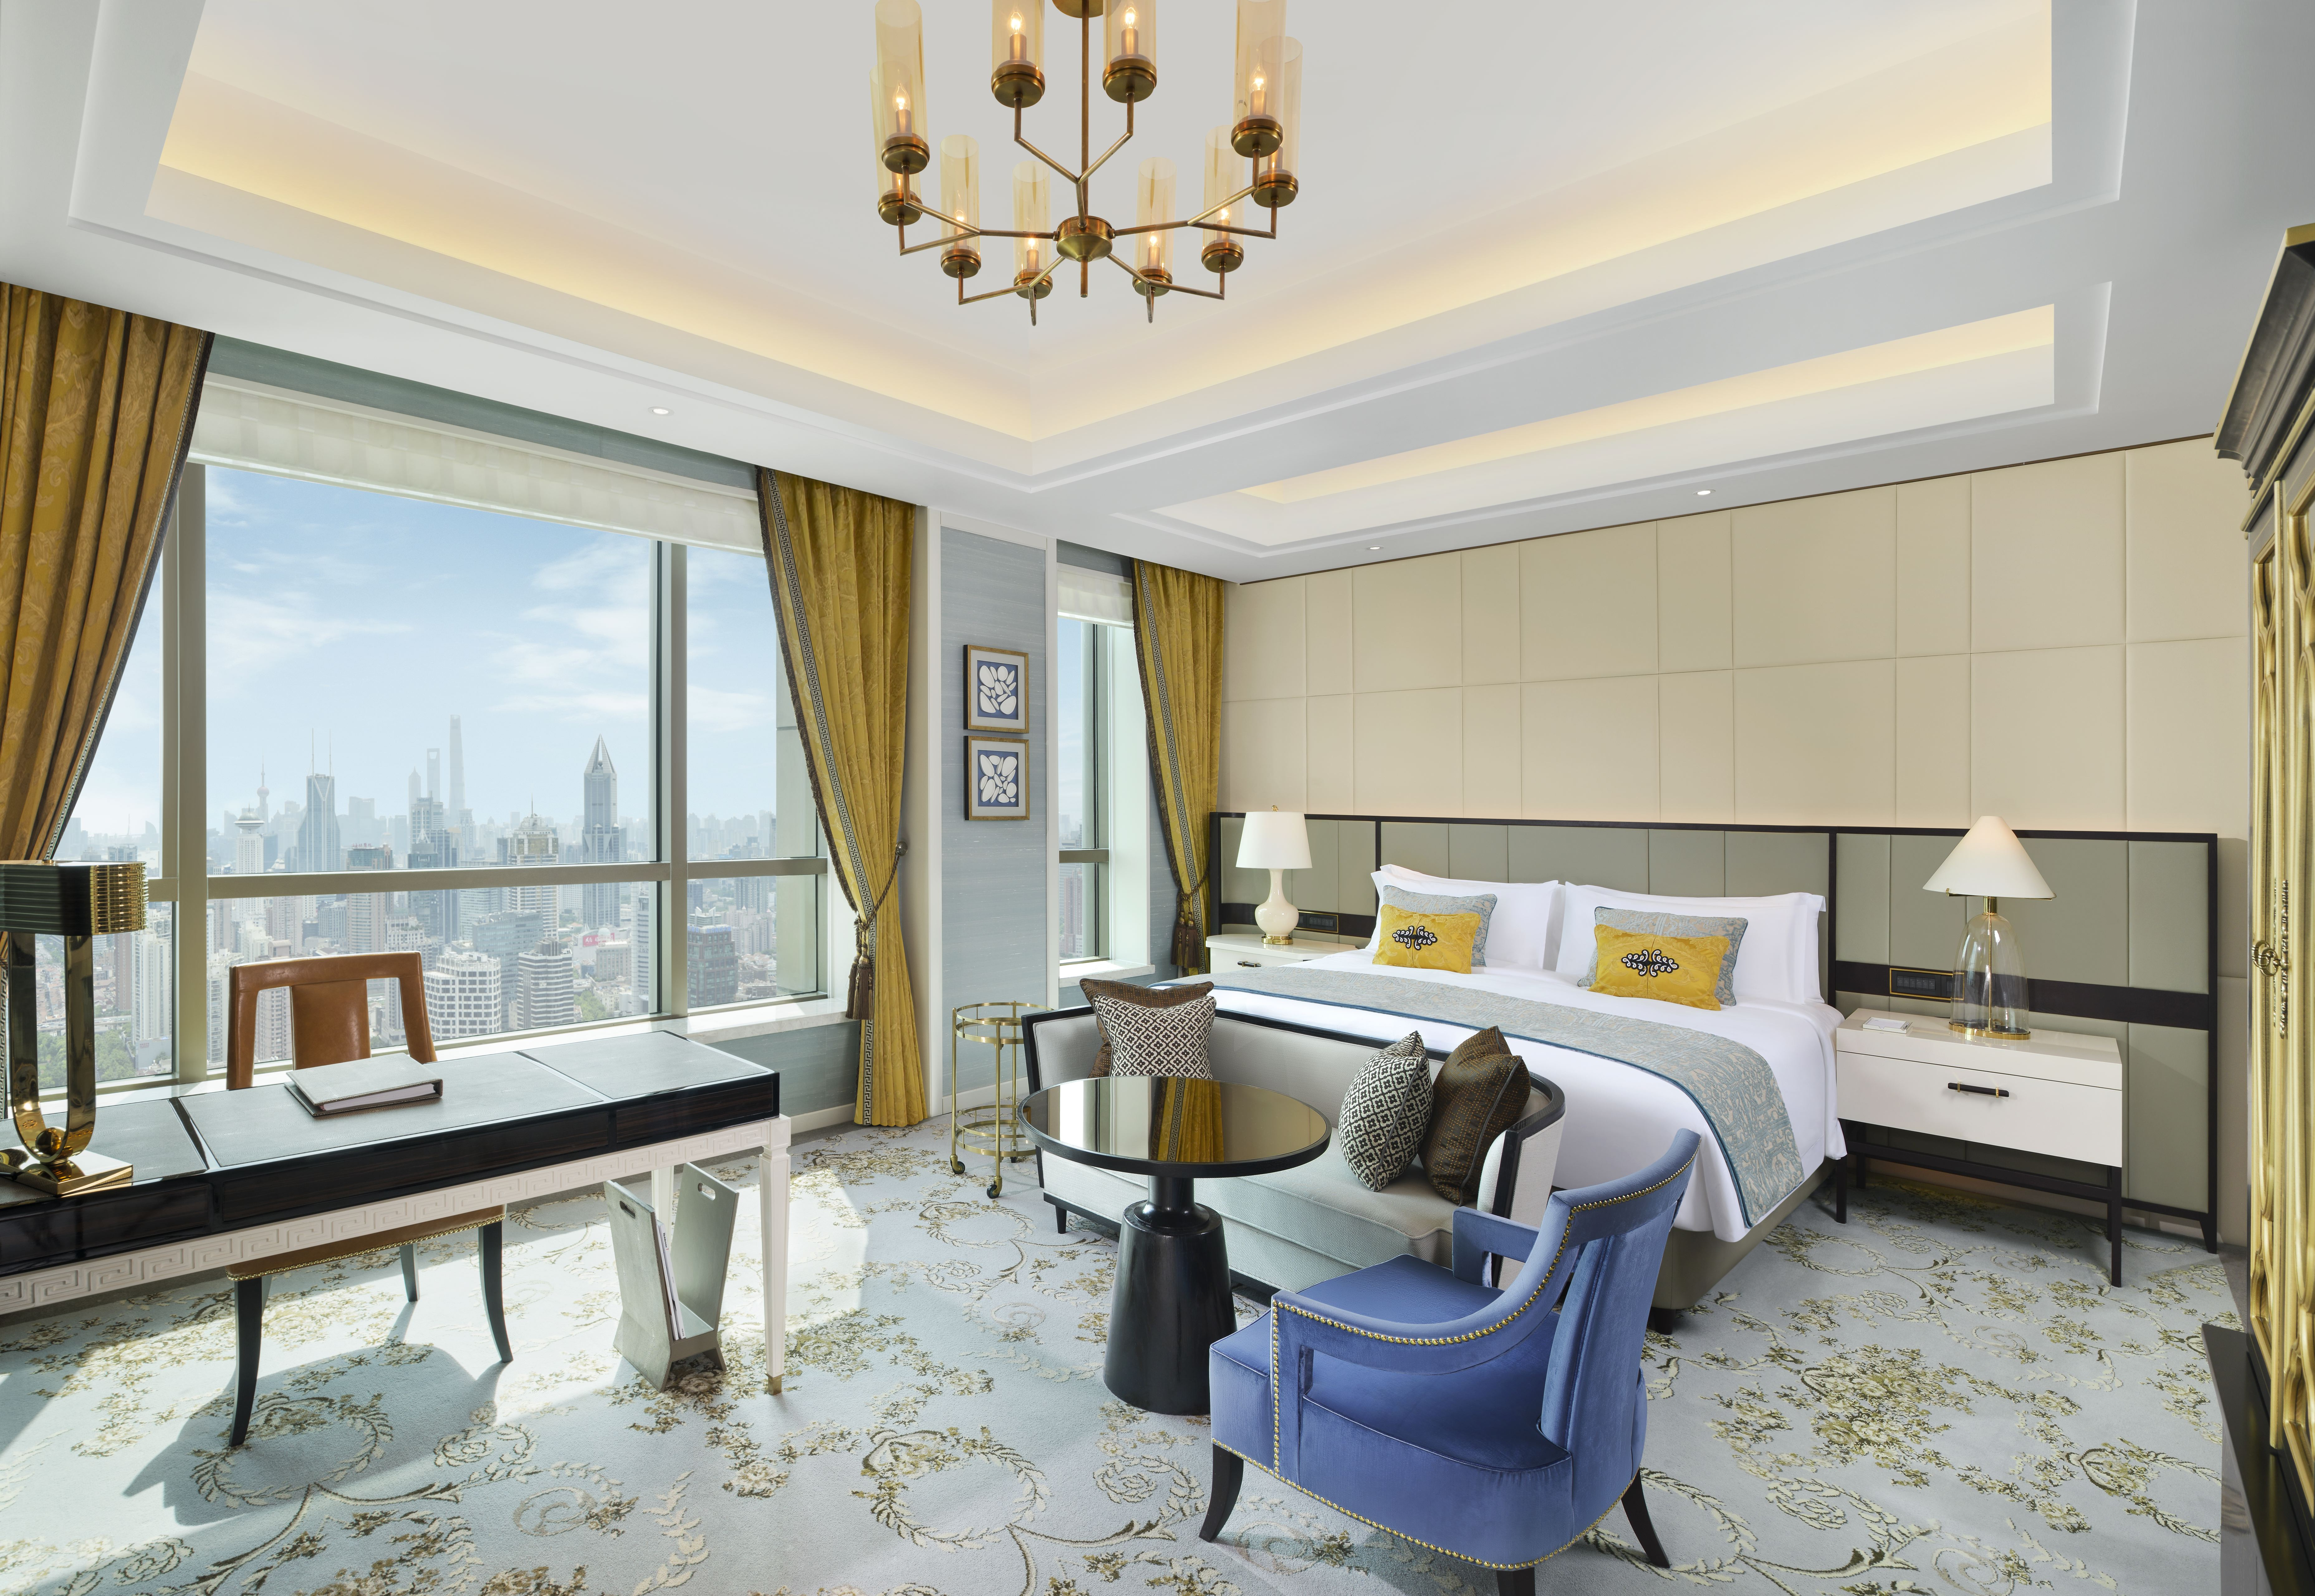 Inside one of the hotel's executive deluxe rooms boasting panoramic views of the city.